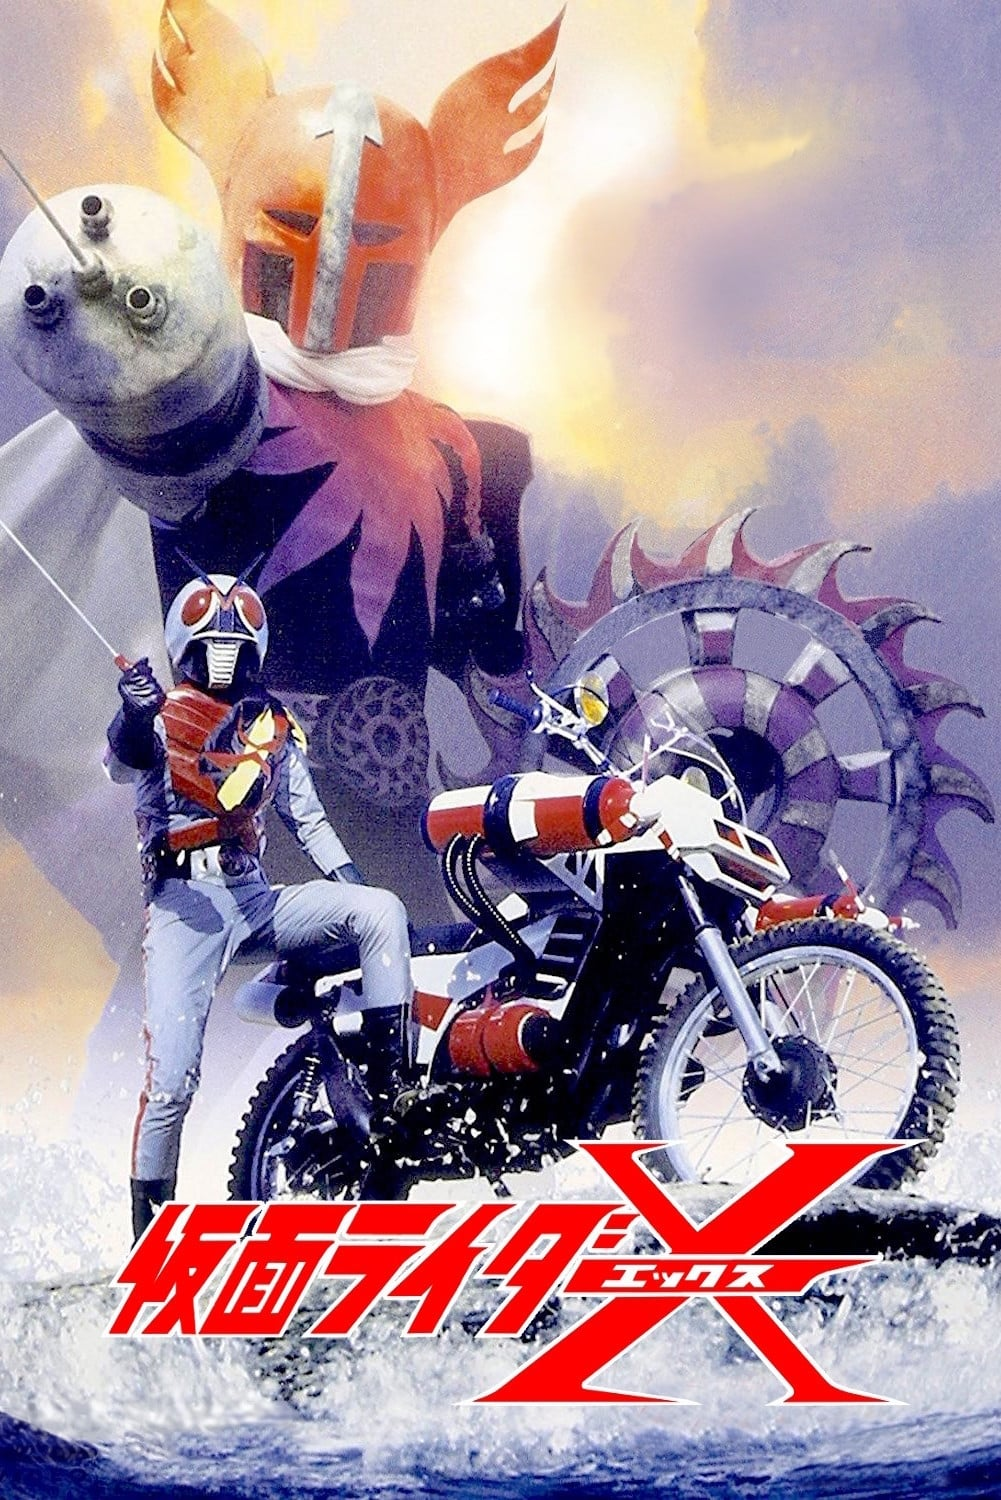 Kamen Rider - Season 21 Episode 1 : Medal, Underwear, Mysterious Arm Season 3